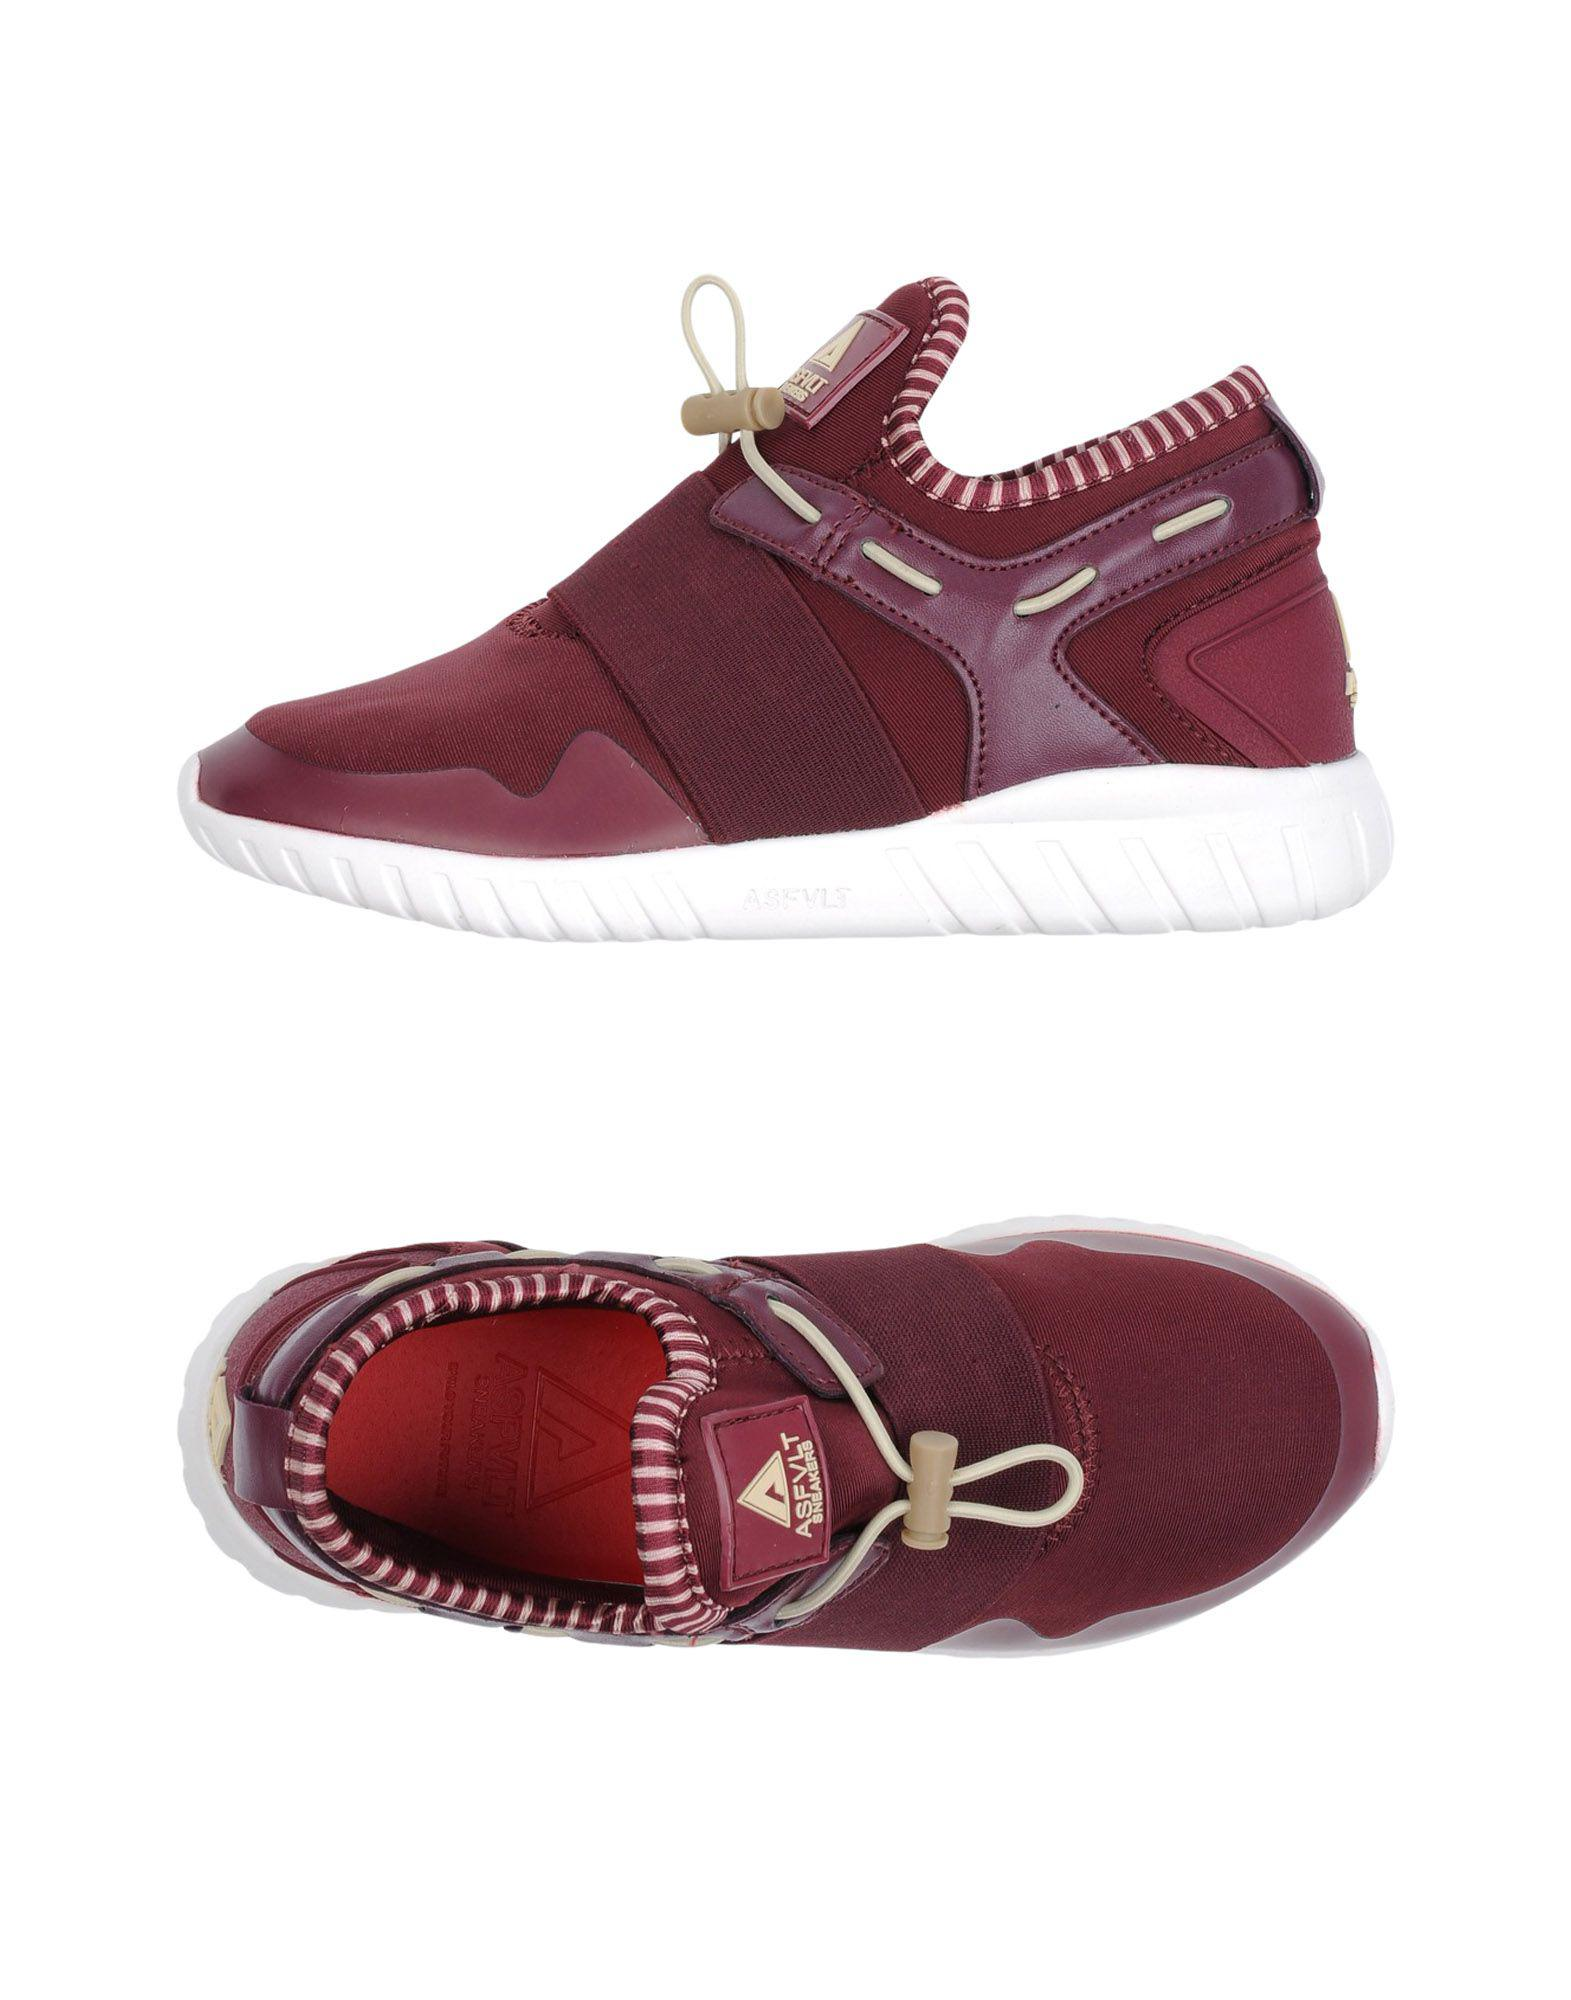 2018 Unisex Sale Shop FOOTWEAR - High-tops & sneakers Asfvlt Sneakers Websites Sale Online Aaa Quality Best Store To Get Cheap Price eI76E4fS28